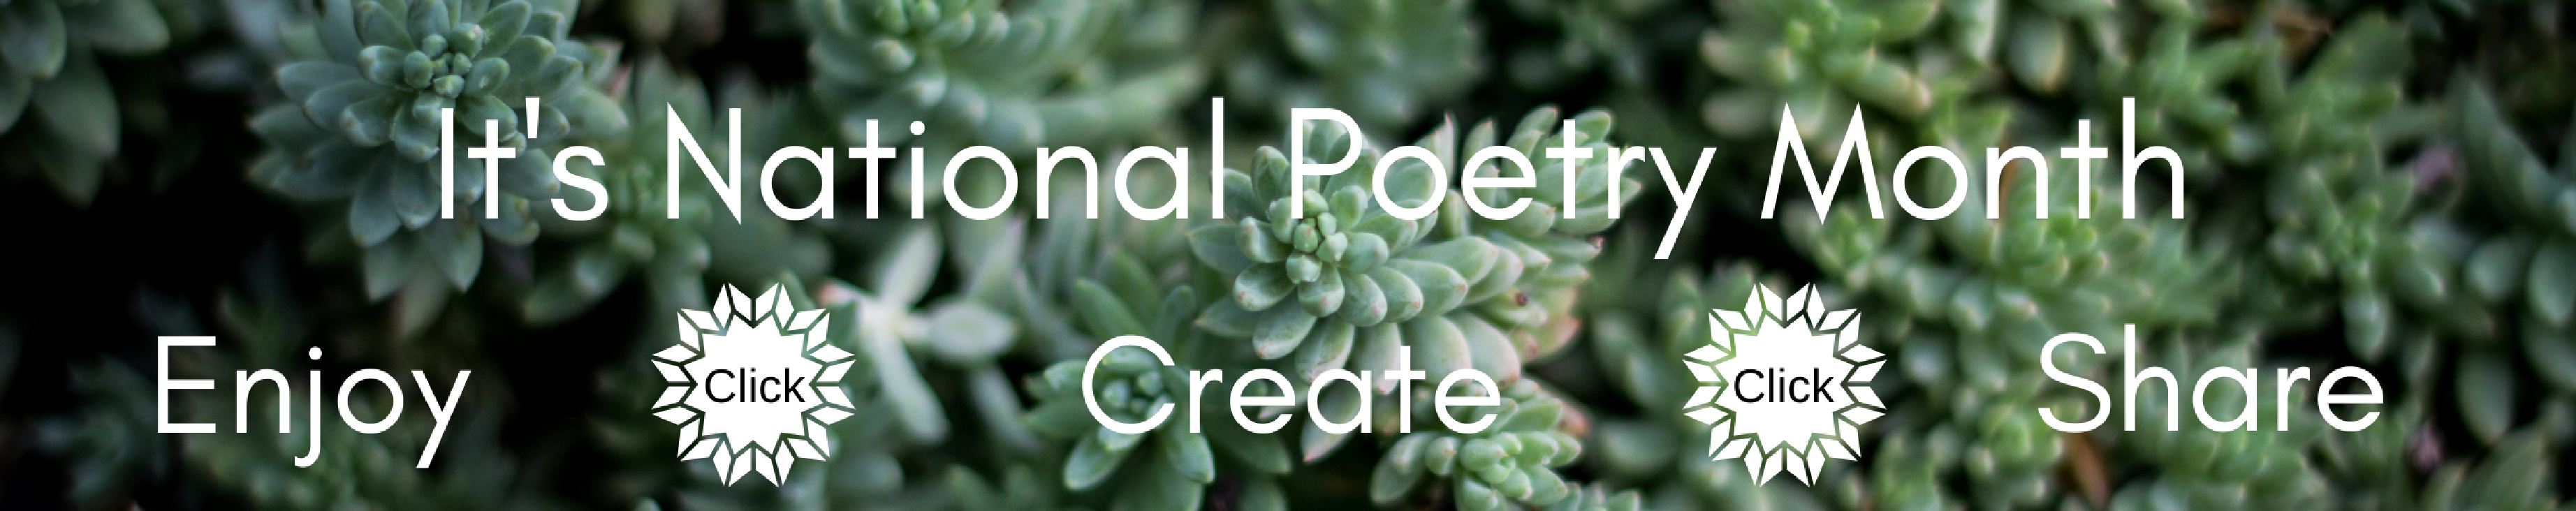 Promotion for National Poetry Month, link to poetry page